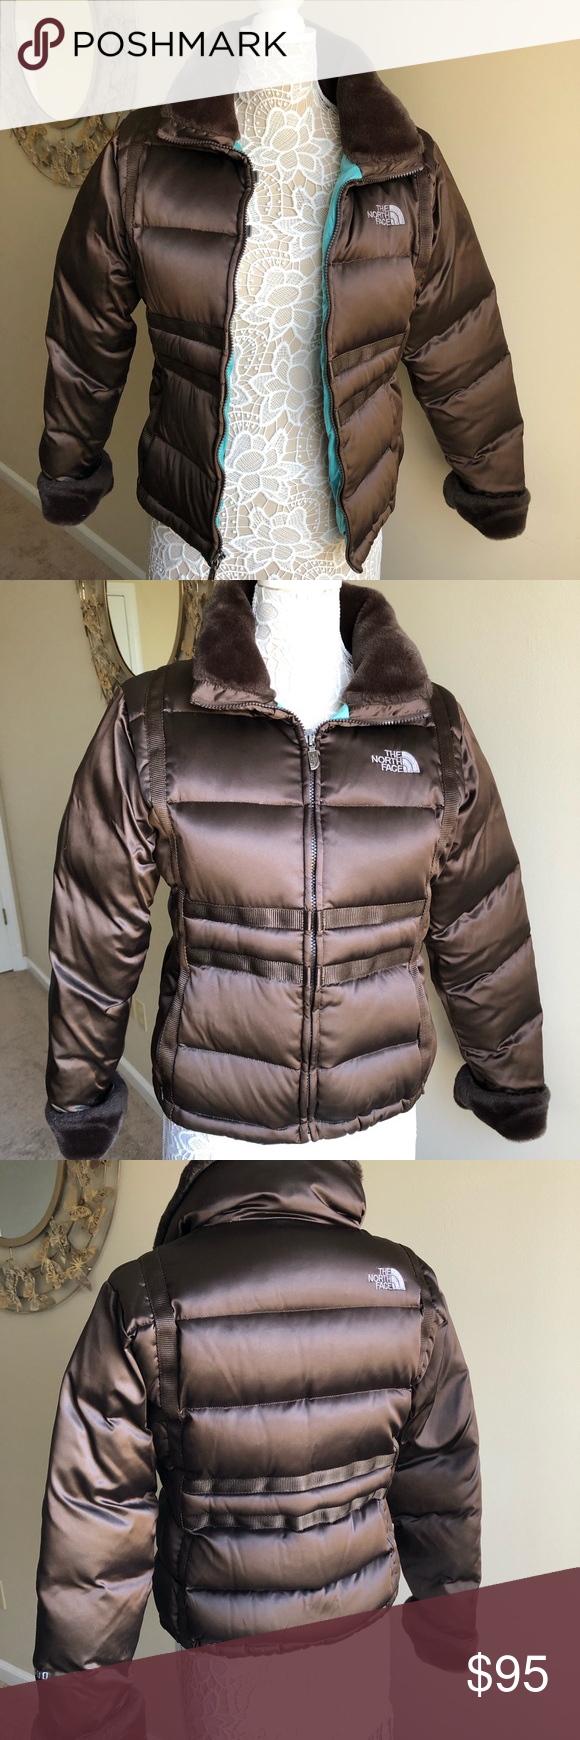 The North Face 600 Down Jacket With Faux Fur Sz M Down Jacket Jackets Chocolate Brown Colour [ 1740 x 580 Pixel ]